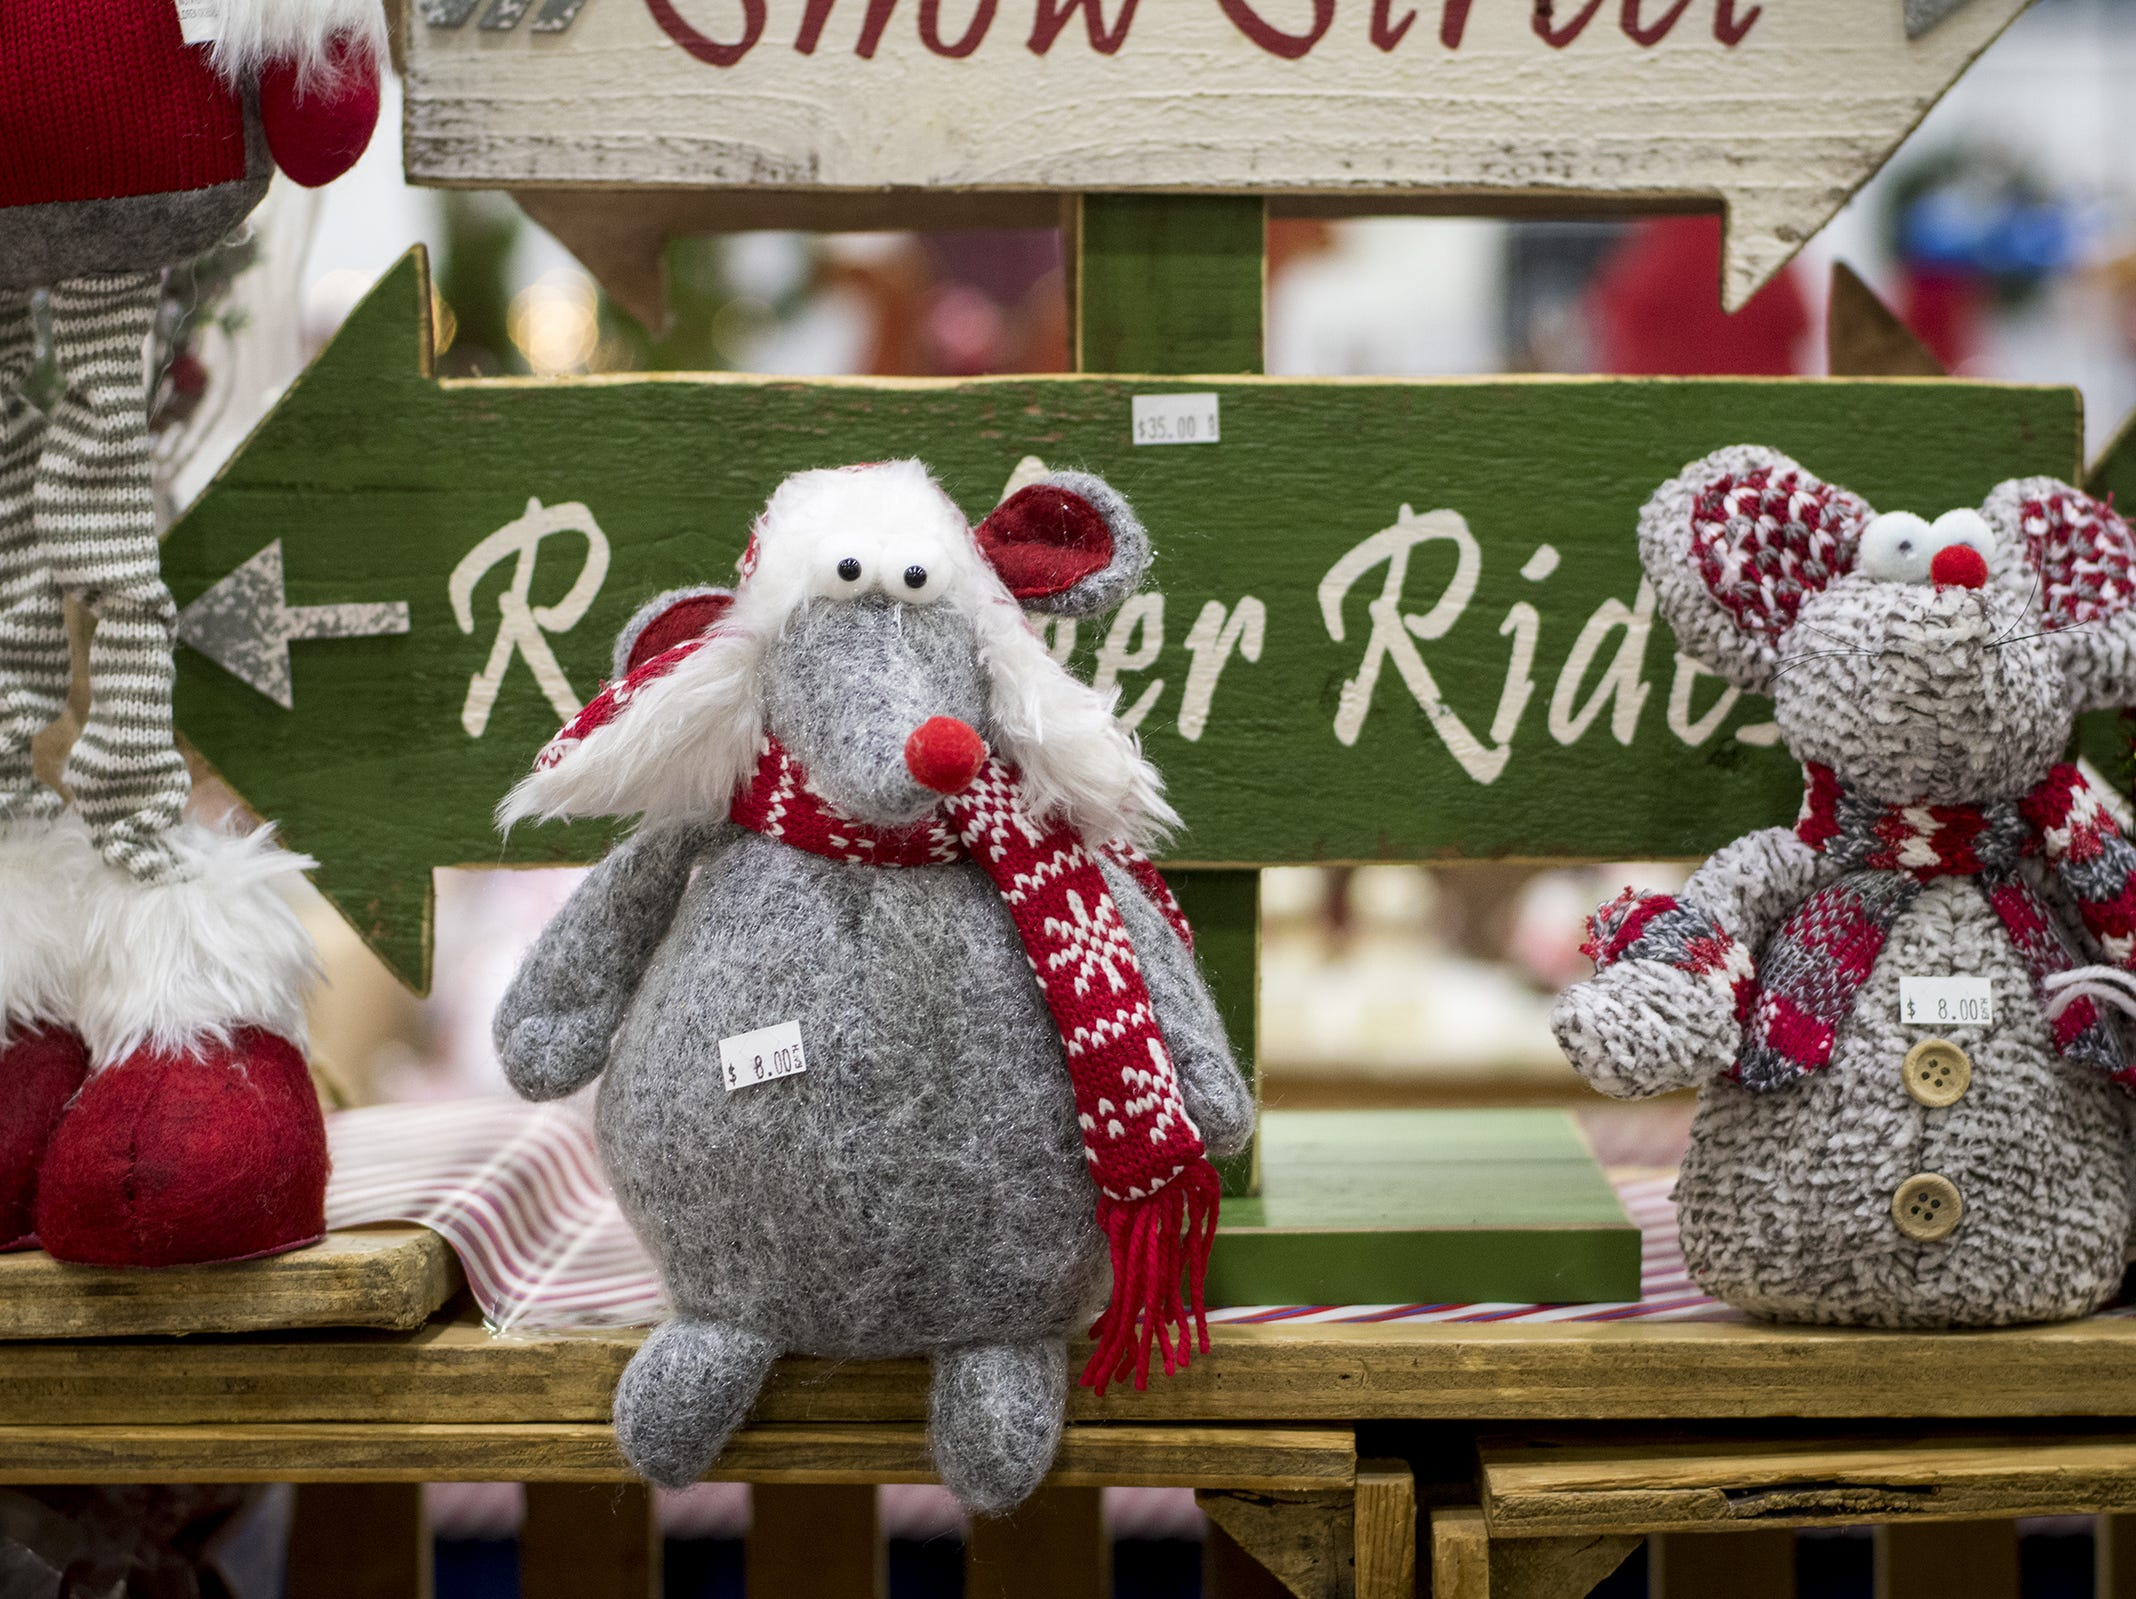 T&T Gifts sells adorable holiday signs and decorations during the Greater Cincinnati Holiday Market at the Duke Energy Center Friday, November 2, 2018 in Cincinnati, Ohio. The event runs through Sunday, November 4.